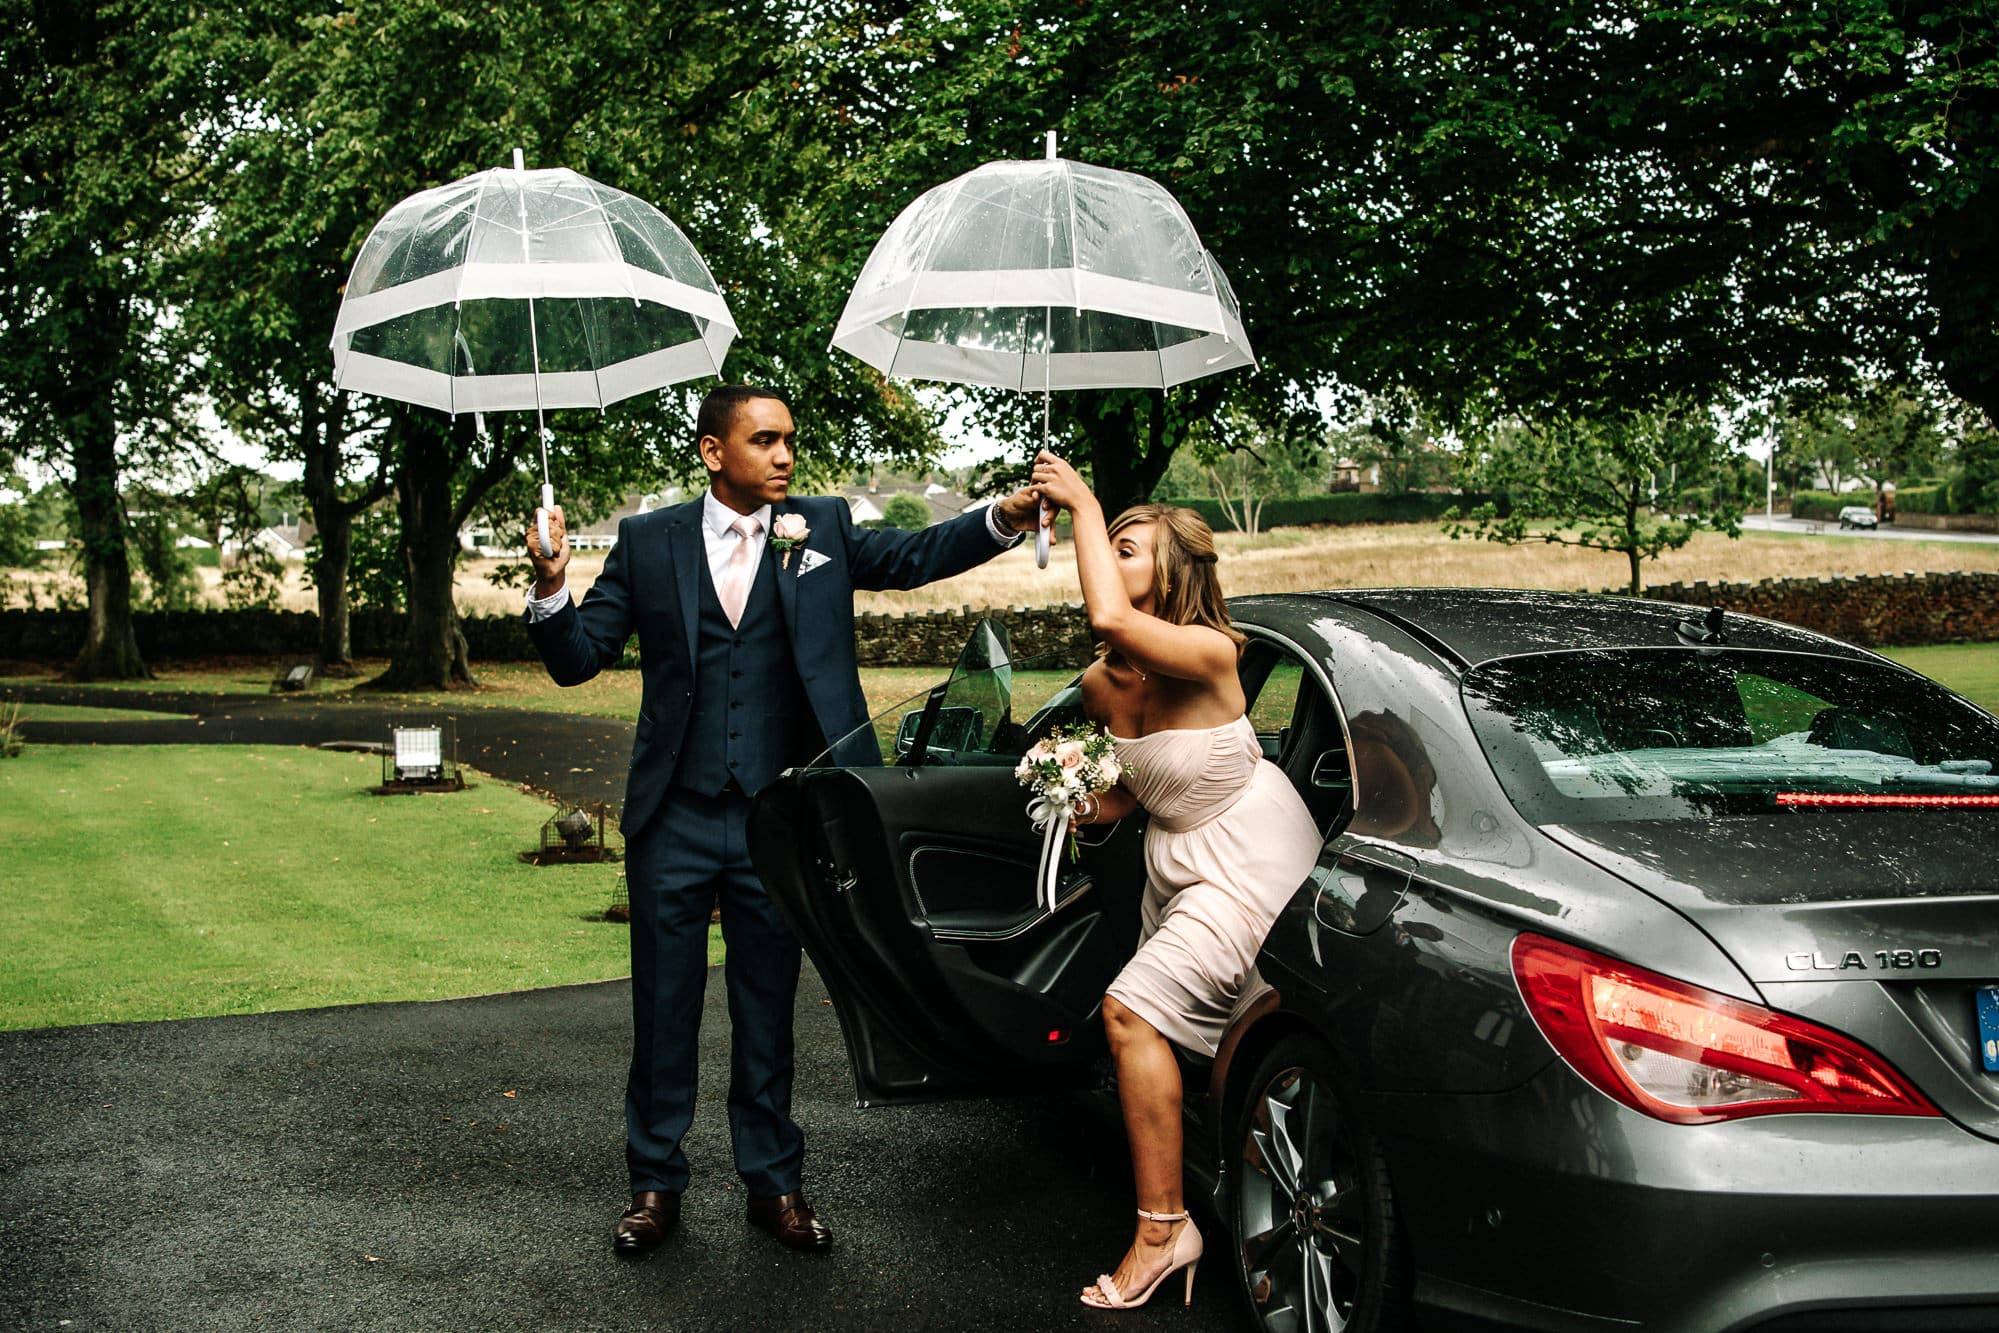 Bridesmaid getting out of the car with a brolly in the rain